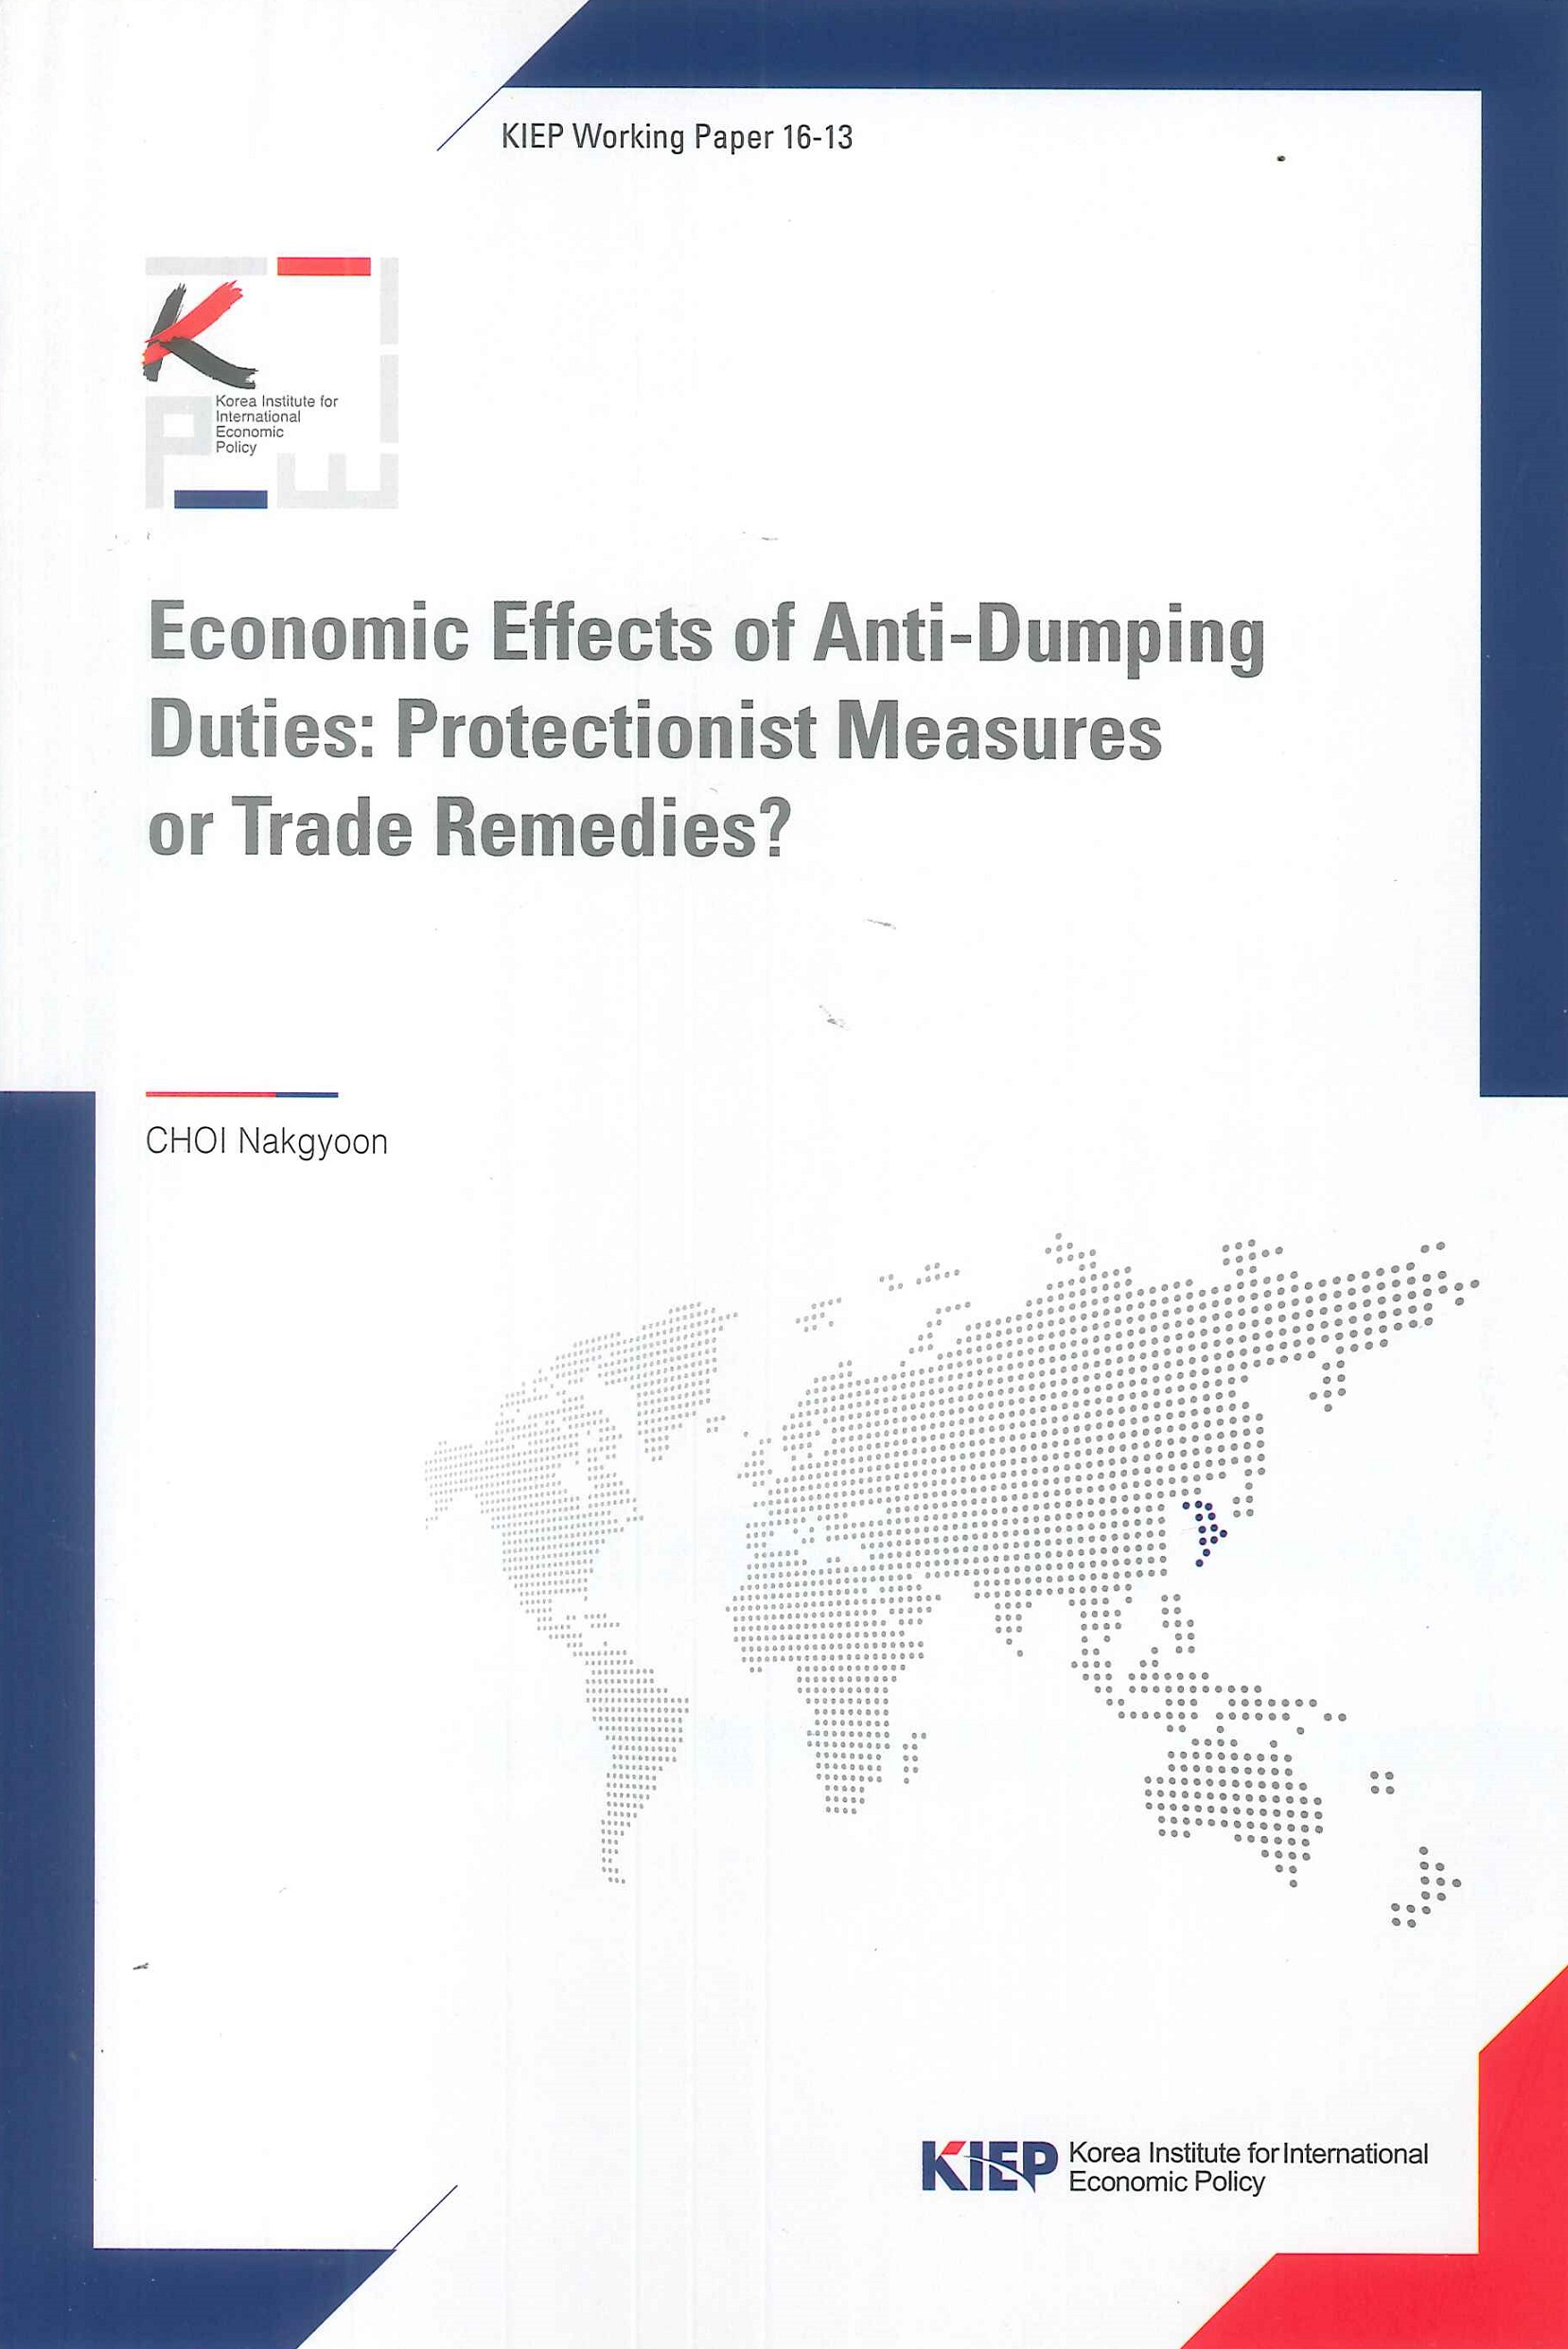 Economic effects of anti-dumping duties:protectionist measures or trade remedies?